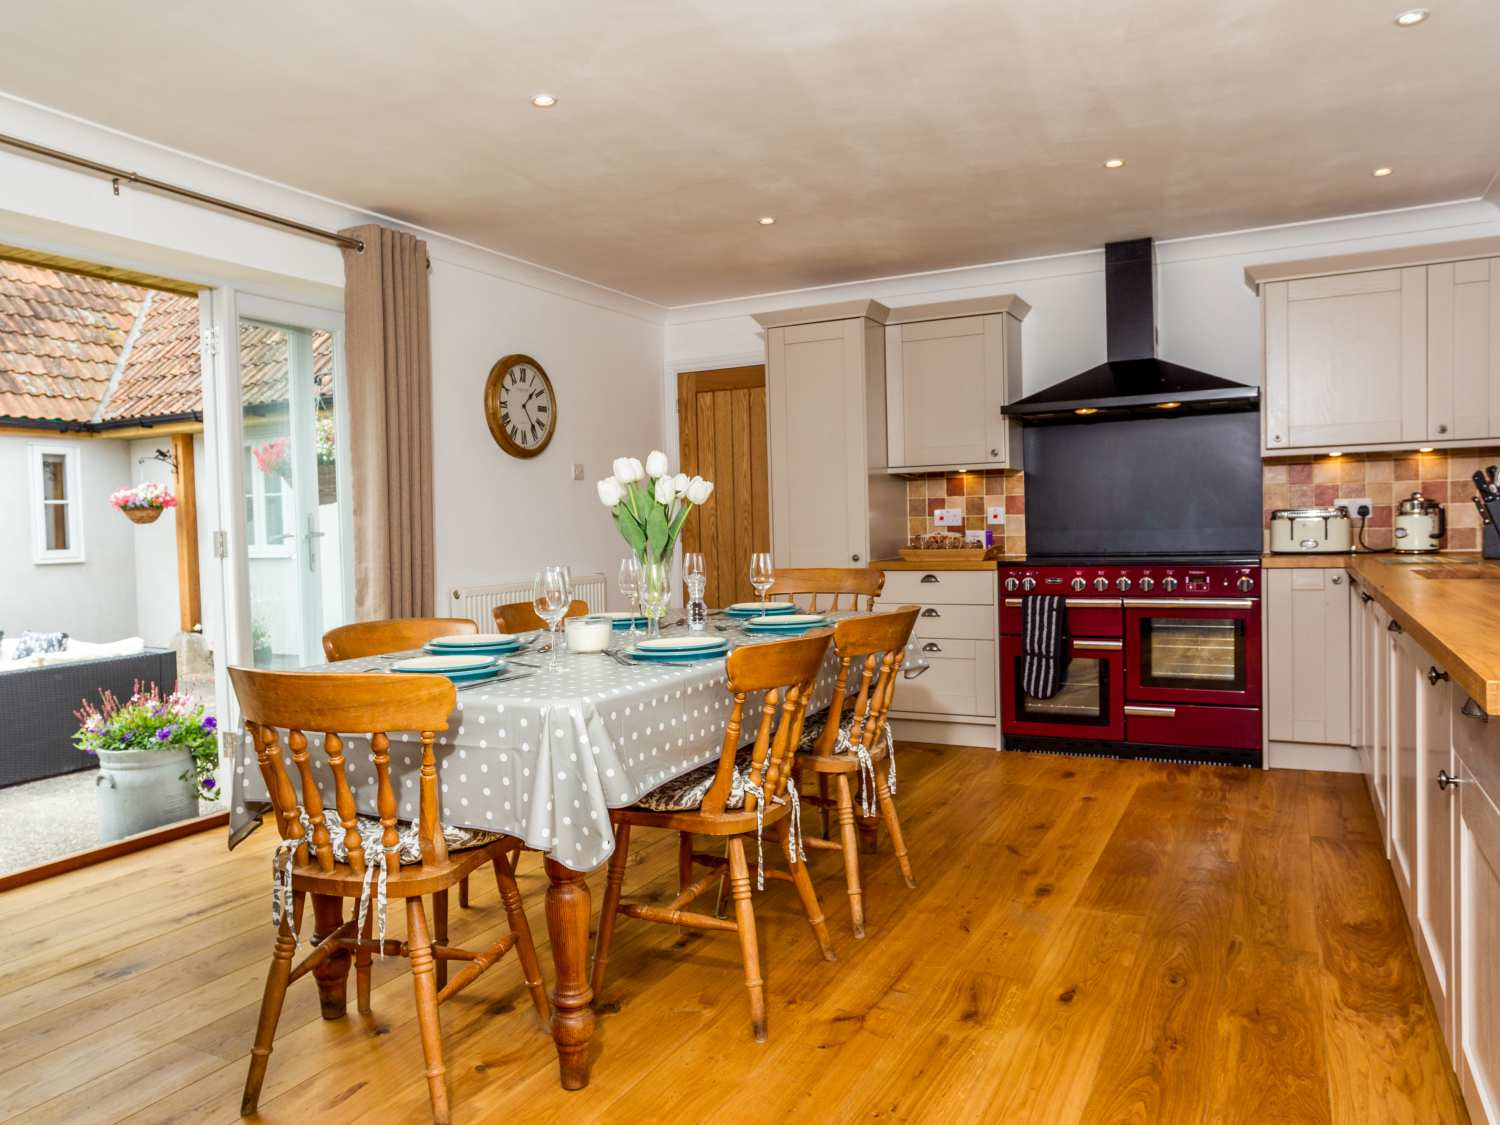 The Farm House Holiday Cottage Upper Seagry18